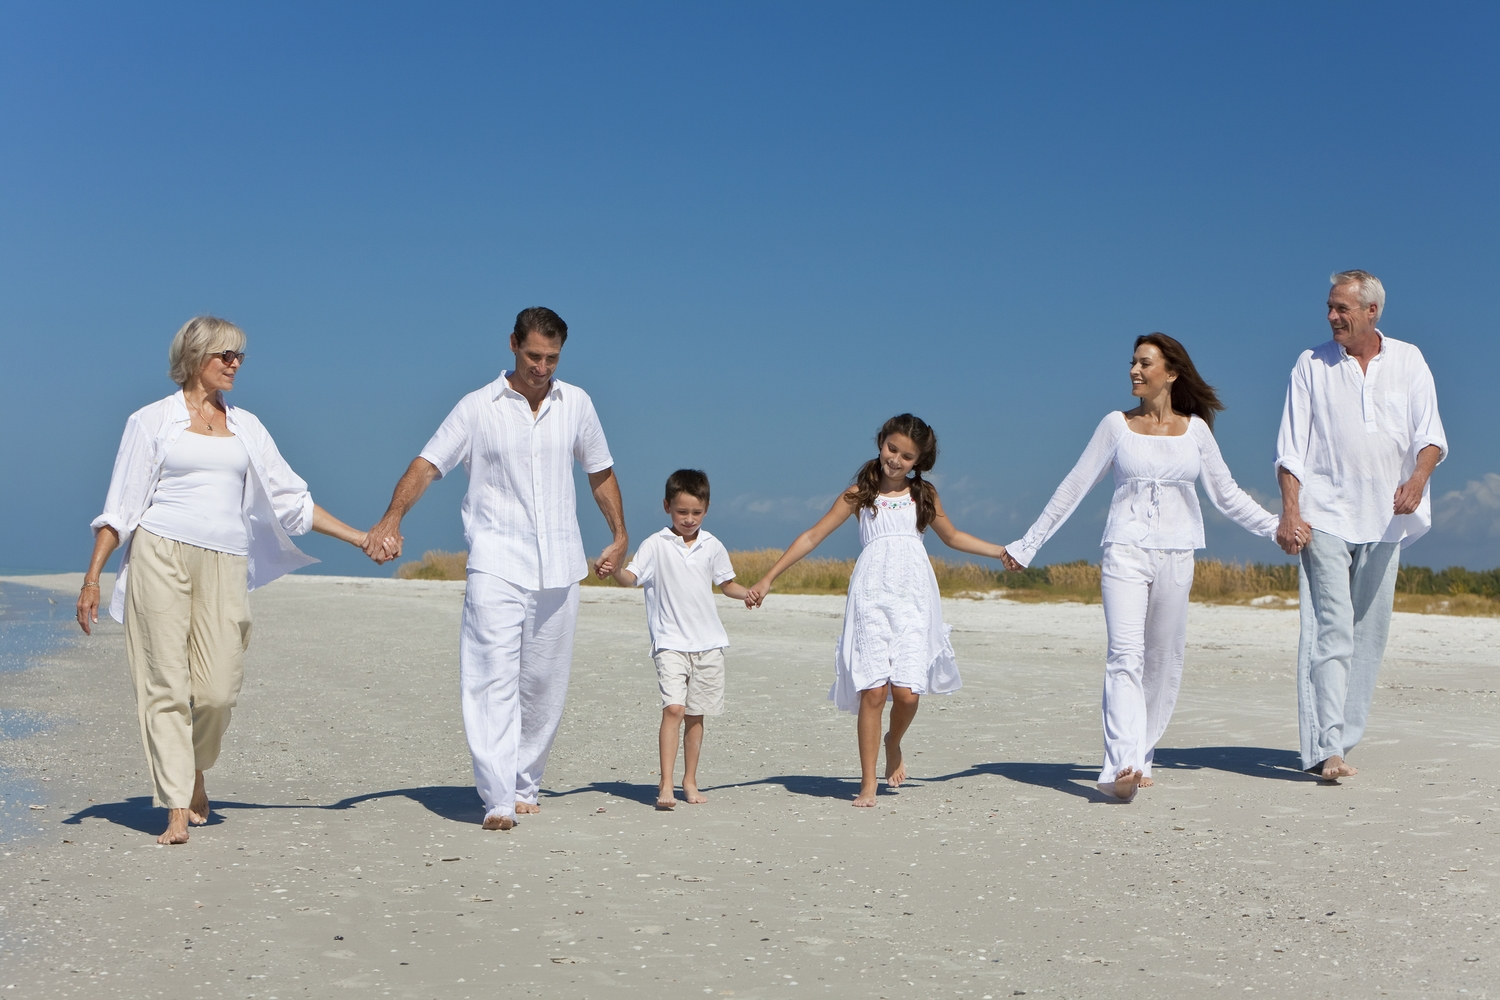 Health & Wellness for the Entire Family: Dialysis, Dental, Integrative Medicine and Community